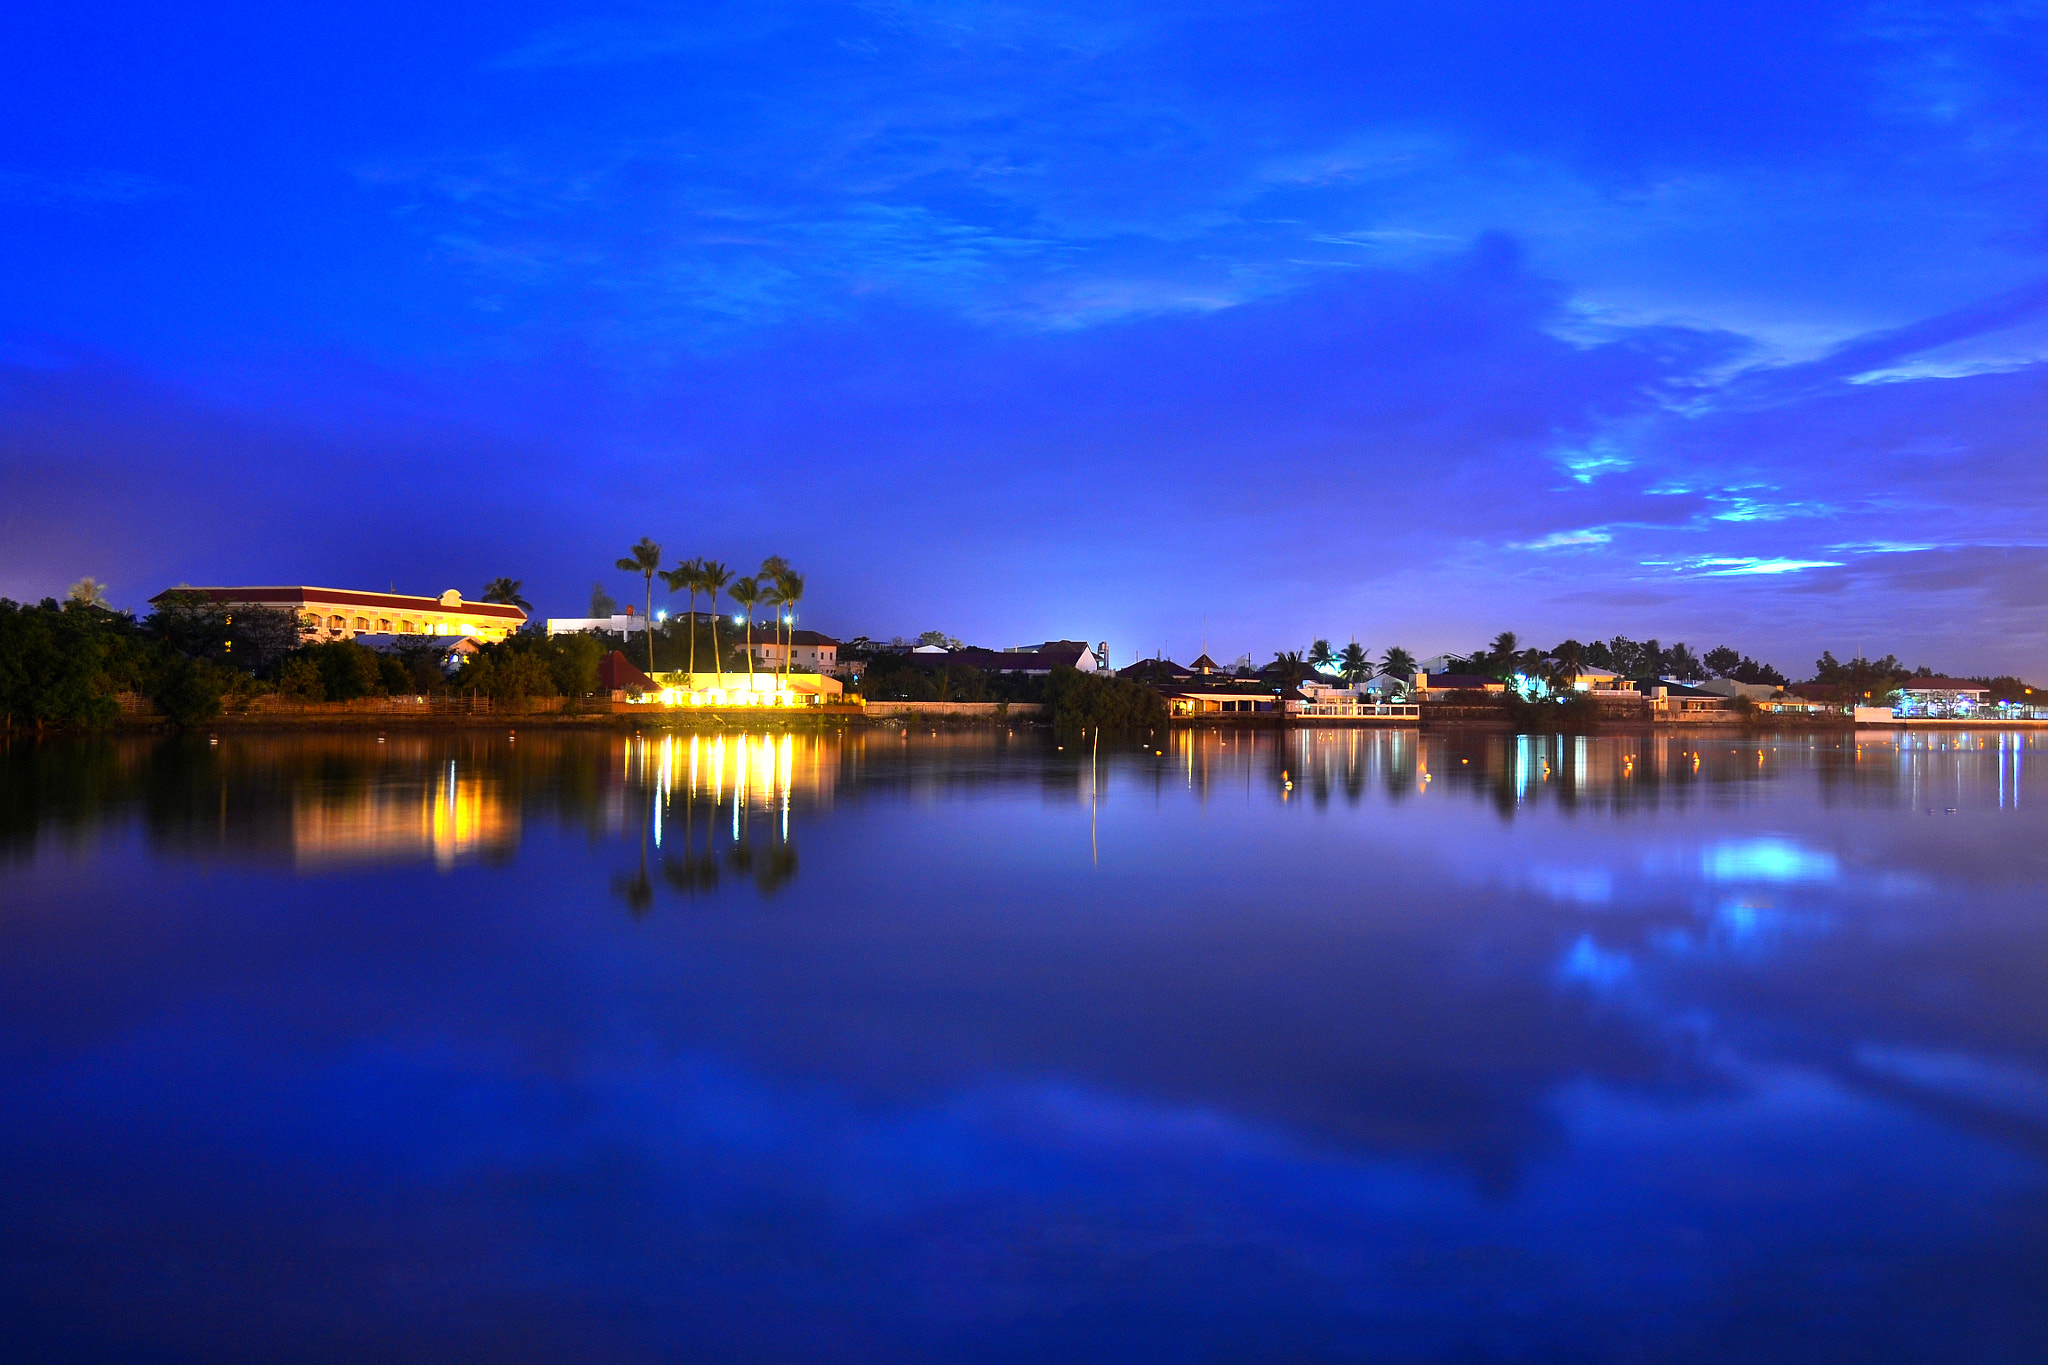 Photograph Iloilo River at Night by Wilfredo Lumagbas Jr. on 500px